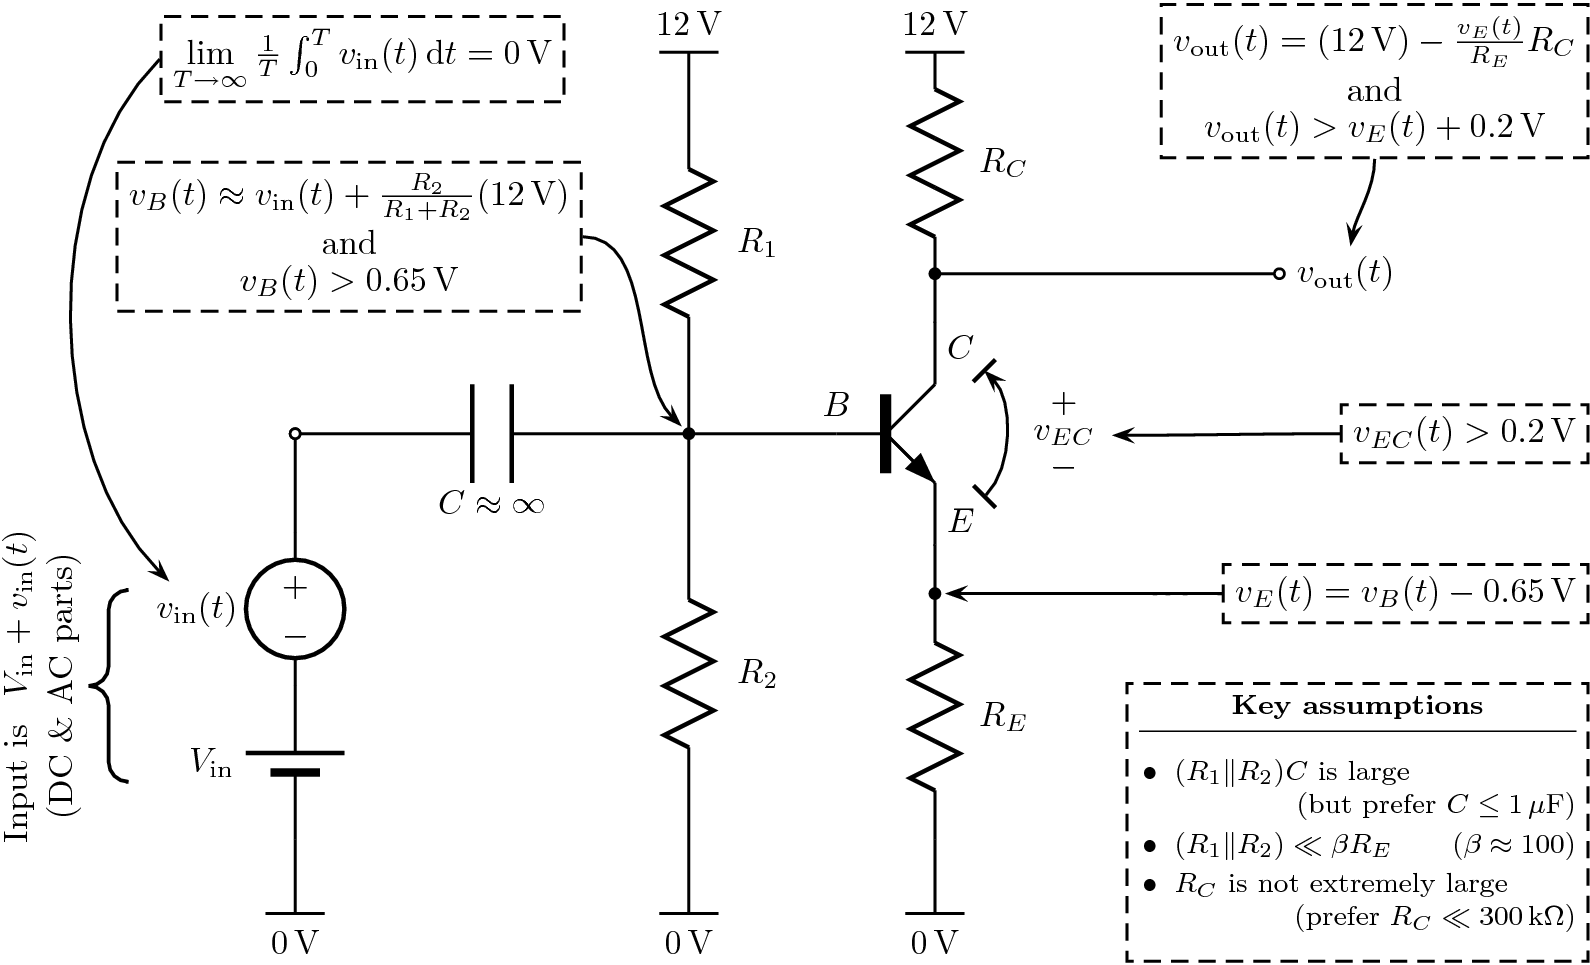 Complete Common Emitter Amplifier